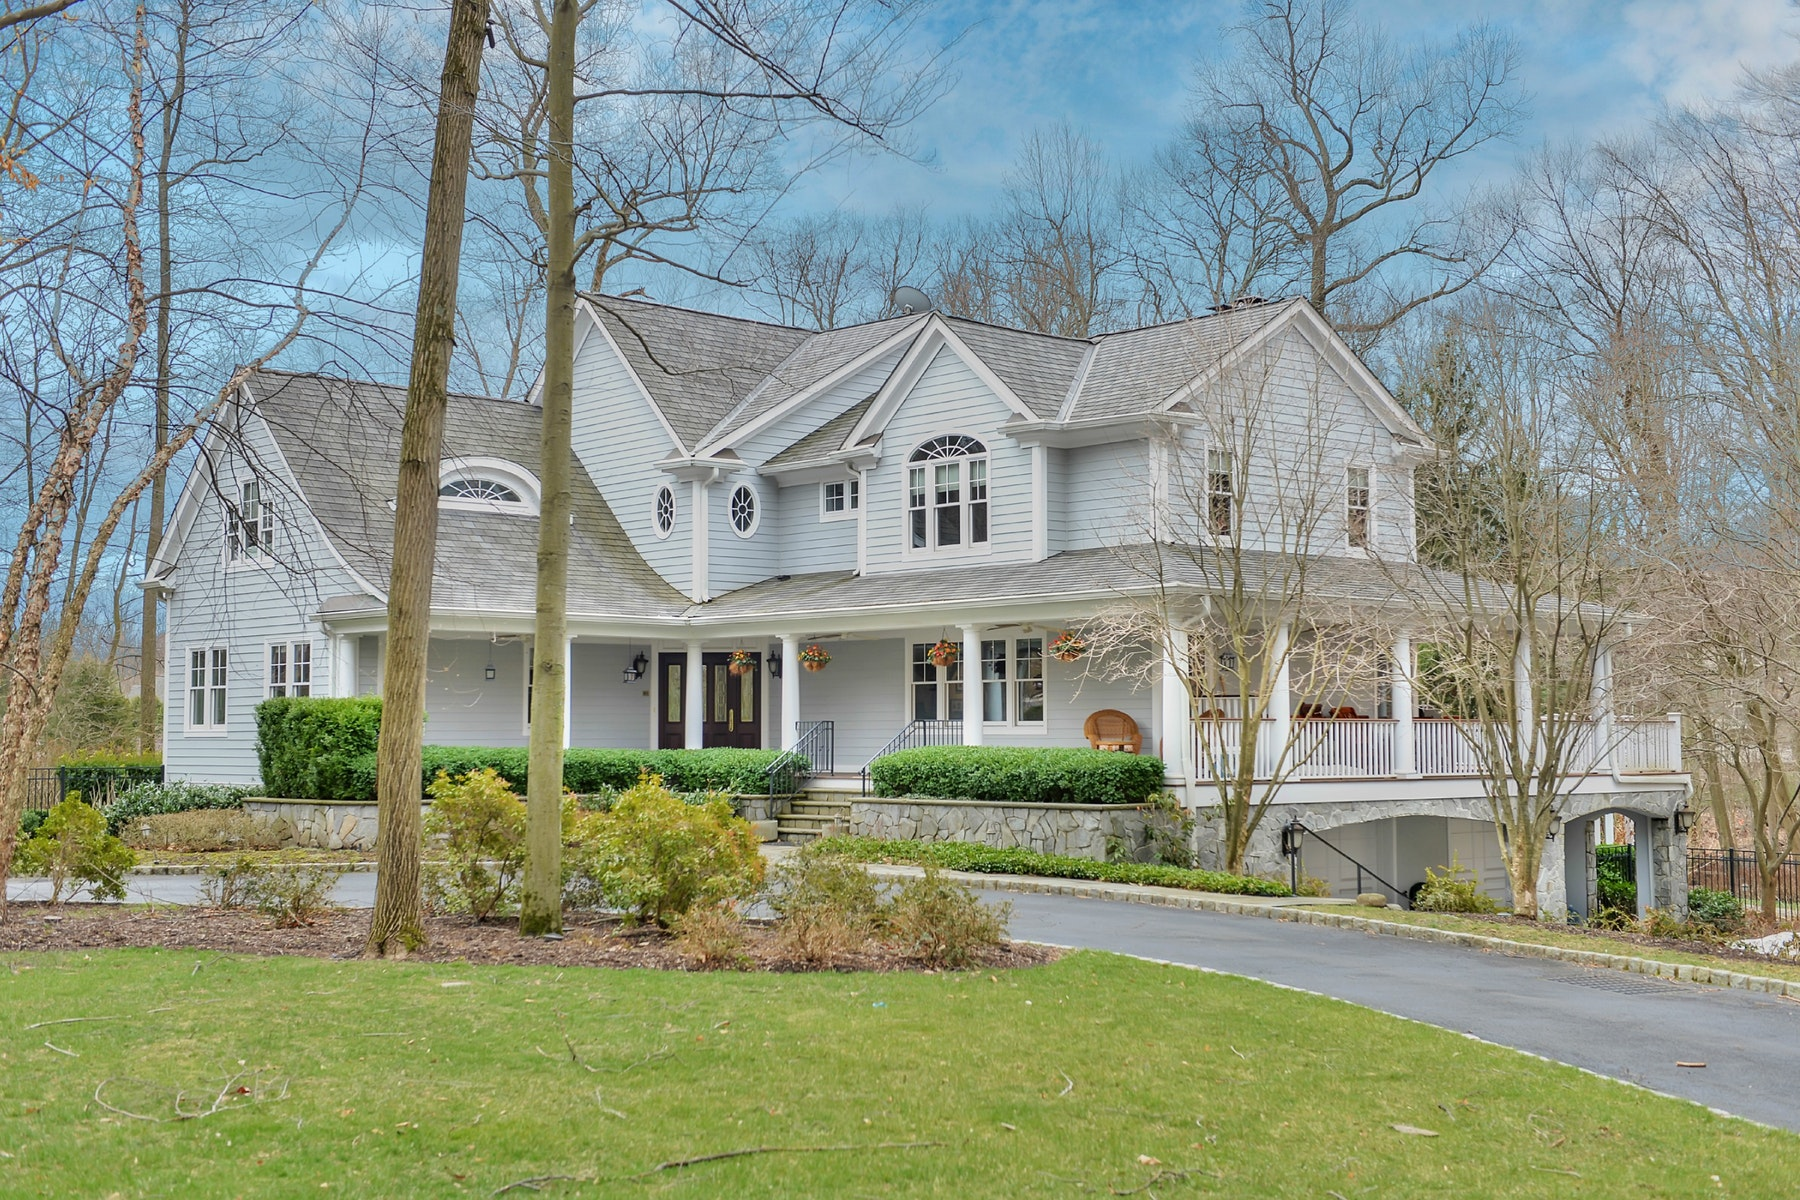 Single Family Homes for Sale at Sophisticated Country 13 Glenwood Drive Saddle River, New Jersey 07458 United States